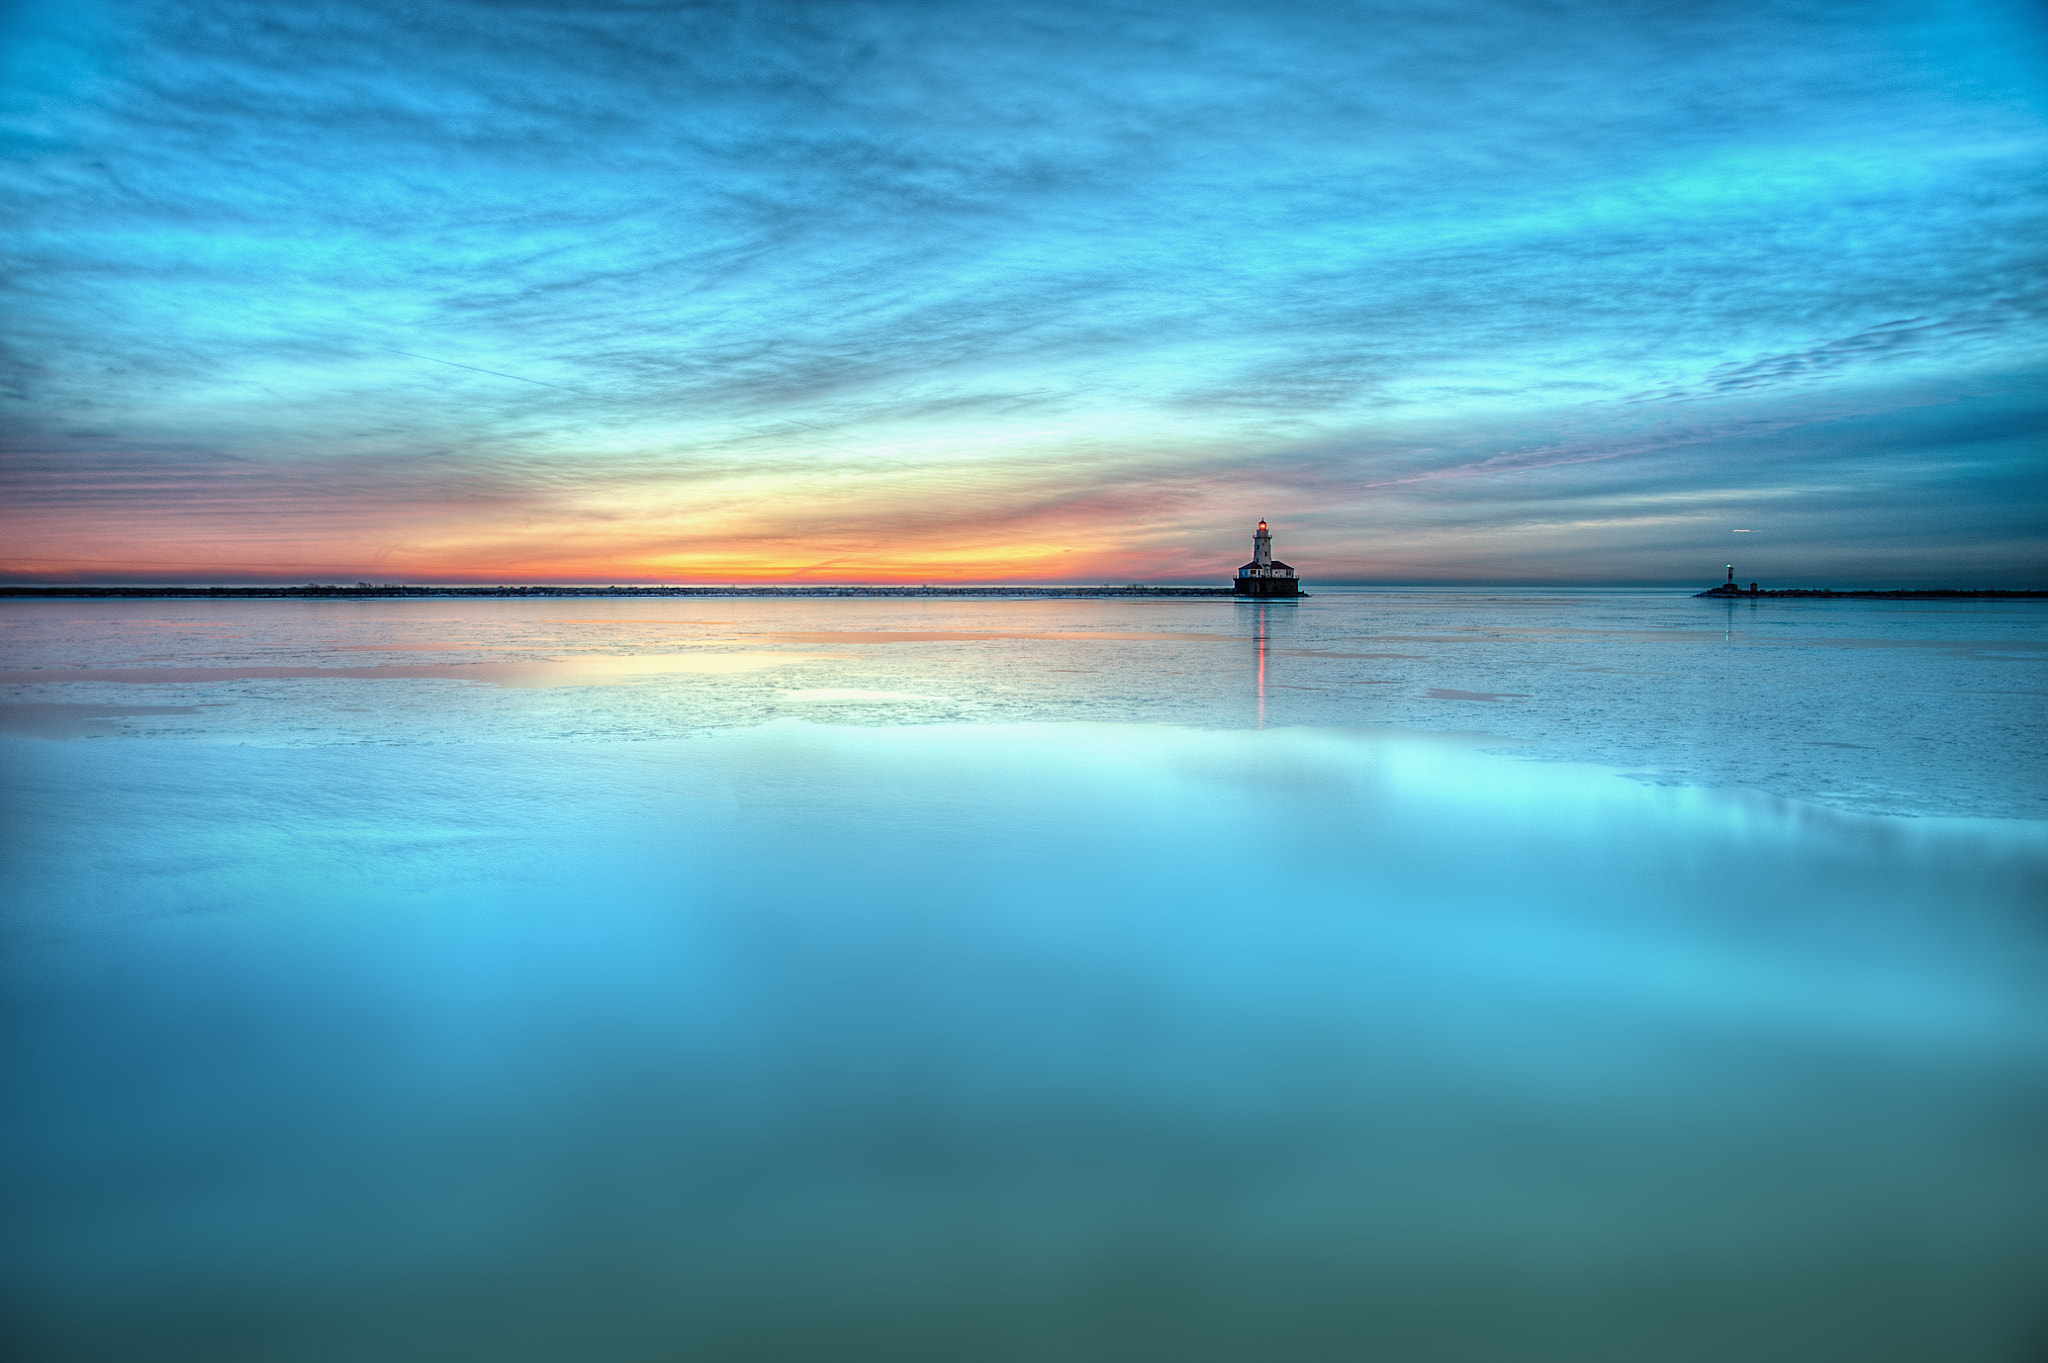 Photograph Lonely Lighthouse by Matty Wolin on 500px